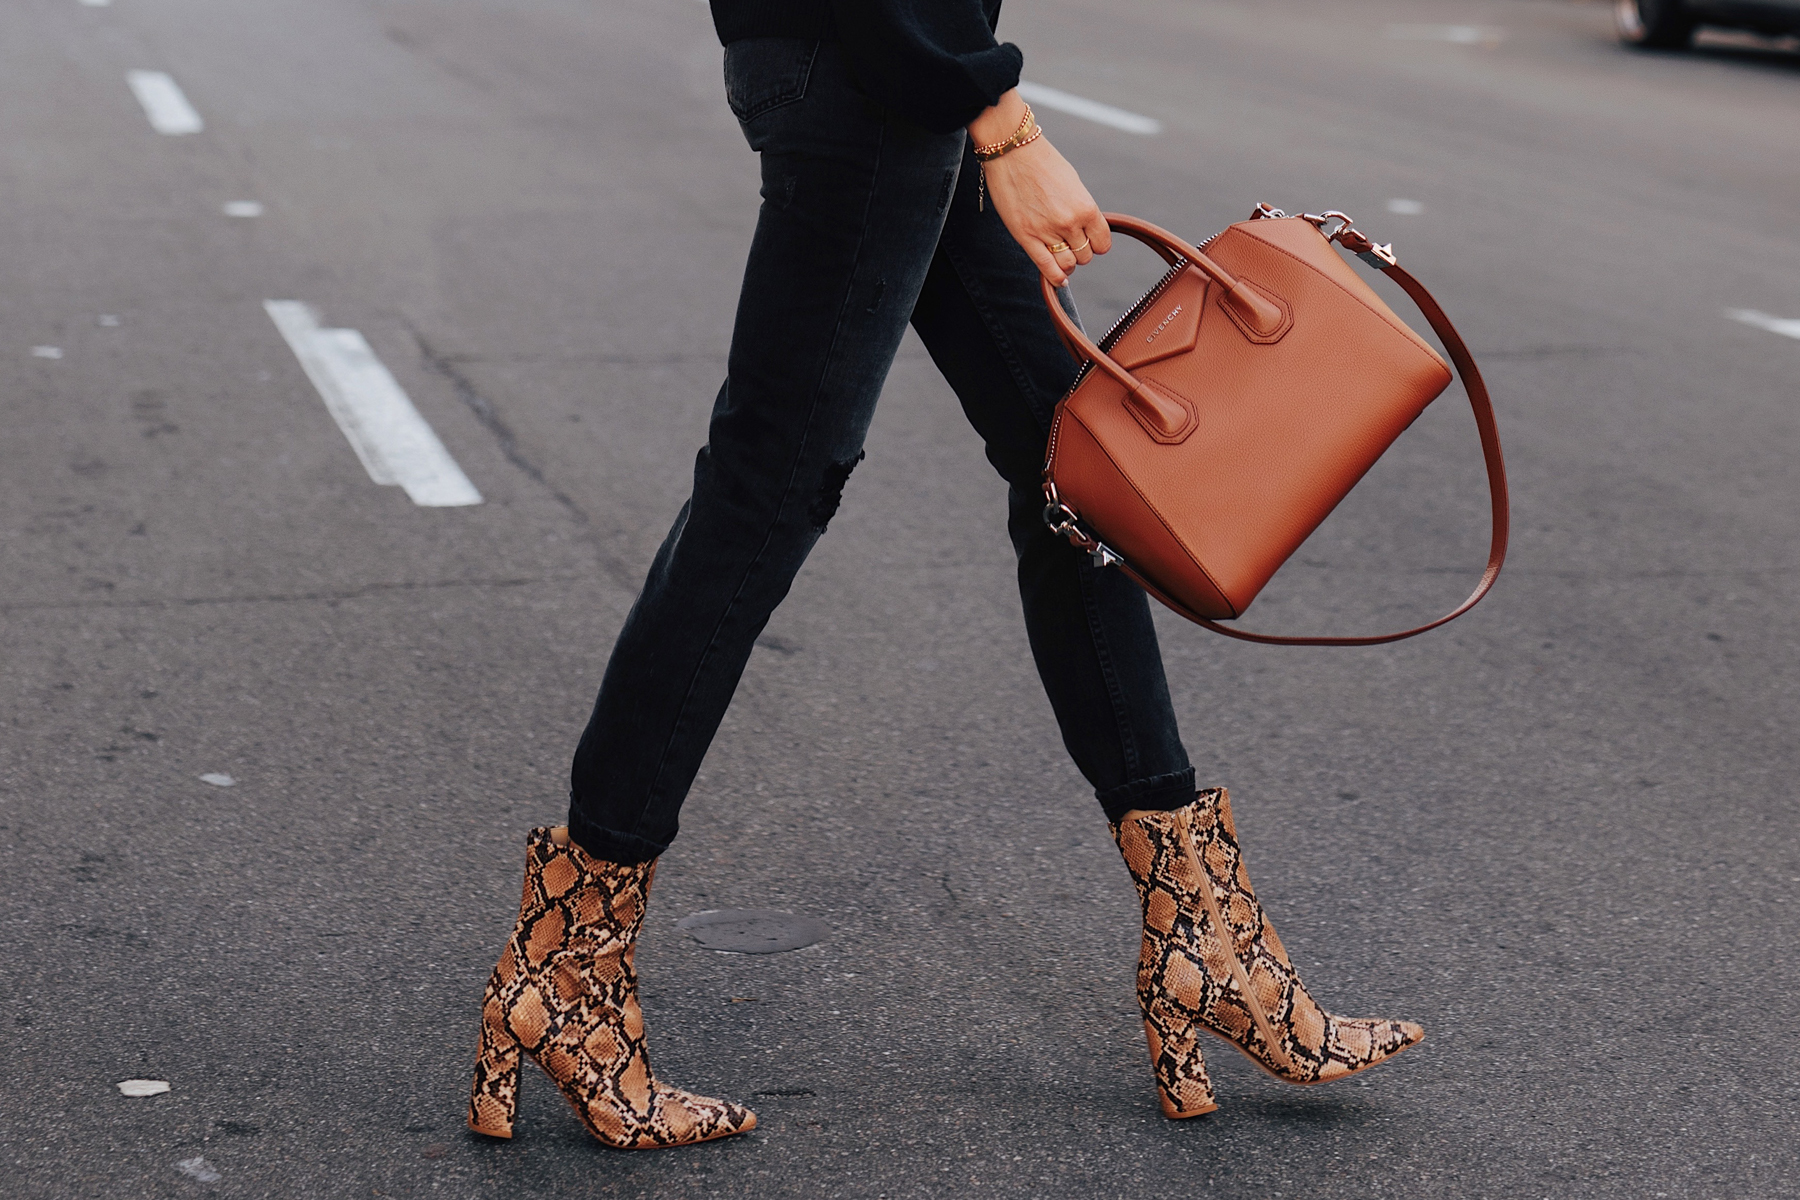 Fashion Jackson Wearing Black Jeans Tan Snakeskin Booties Givenchy Antigona Satchel Cognac